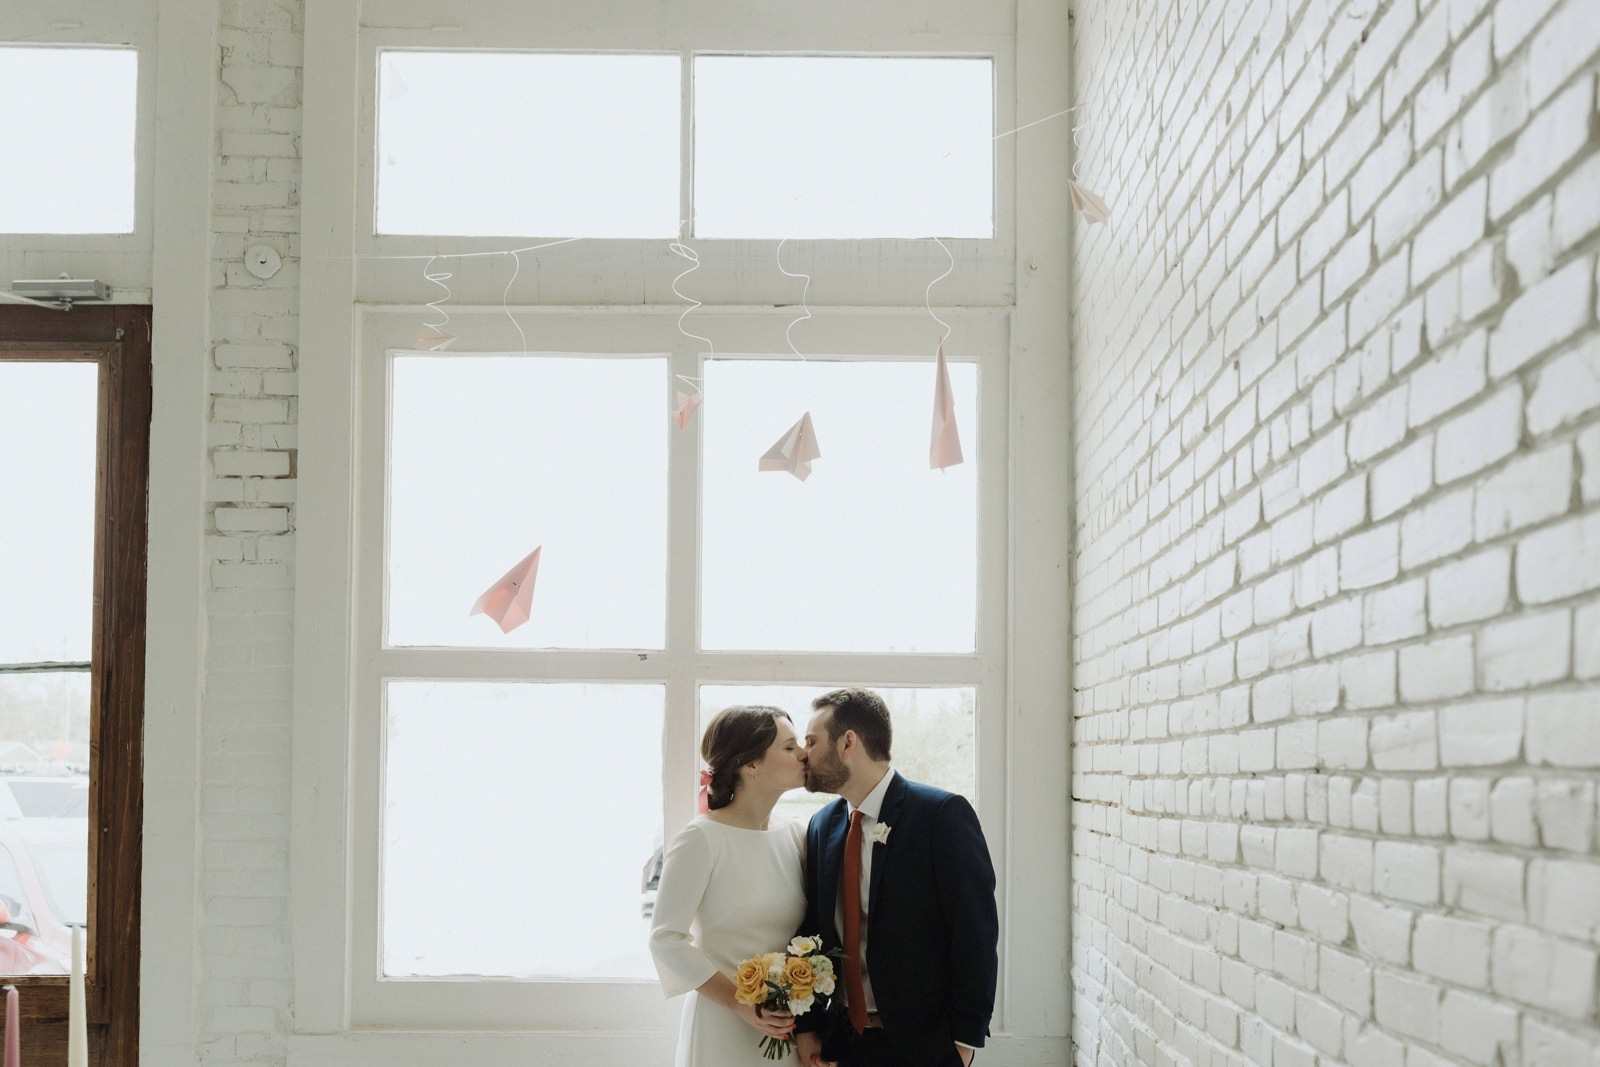 Bride and groom with classic style in front of urban loft window with hanging paper airplanes